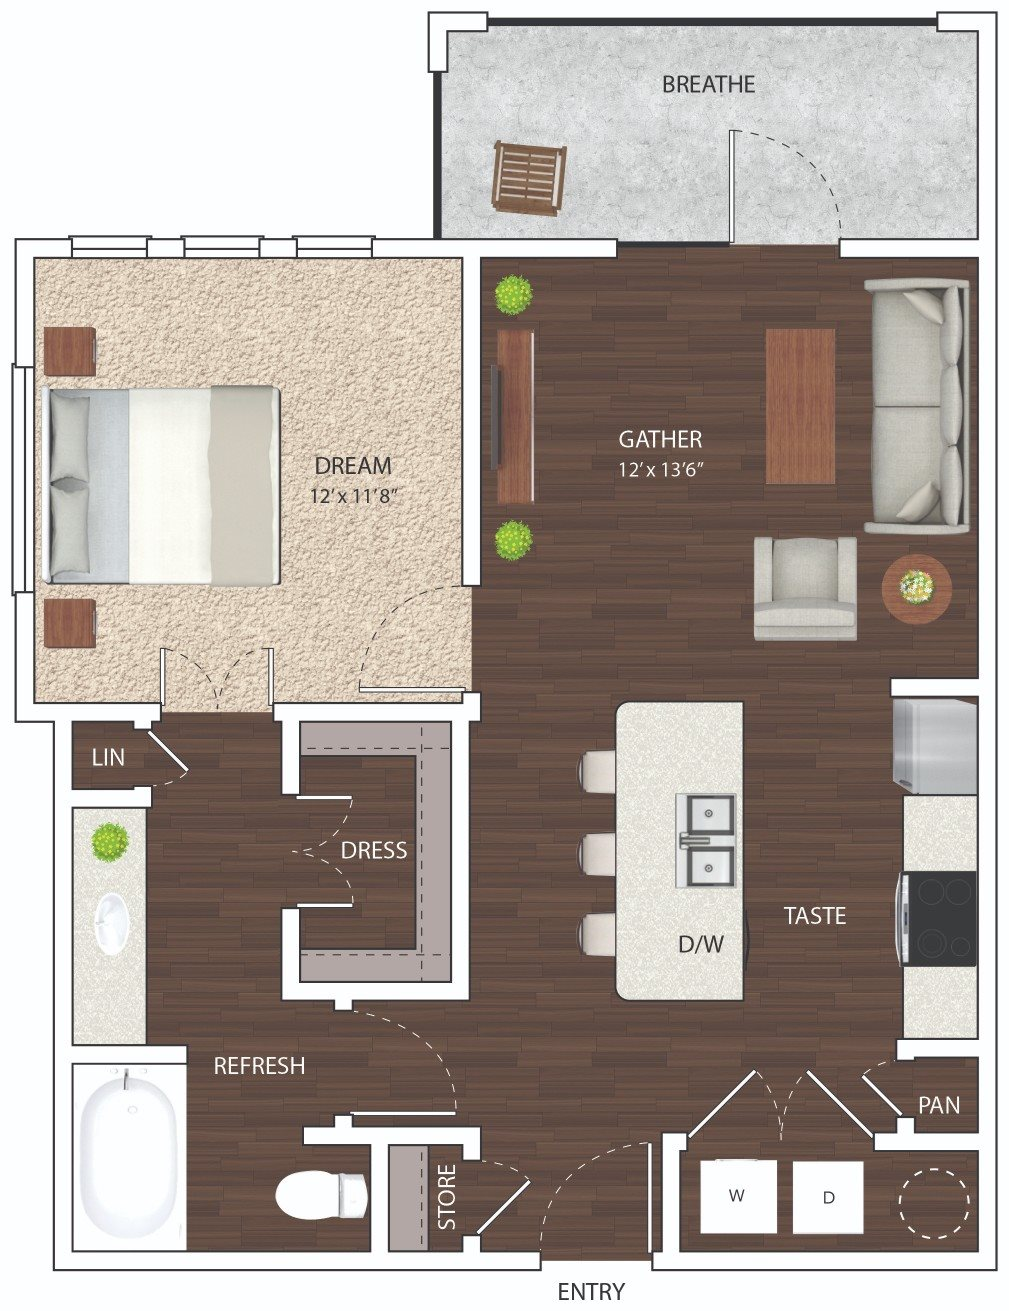 A1 - Phase I Floor Plan 1